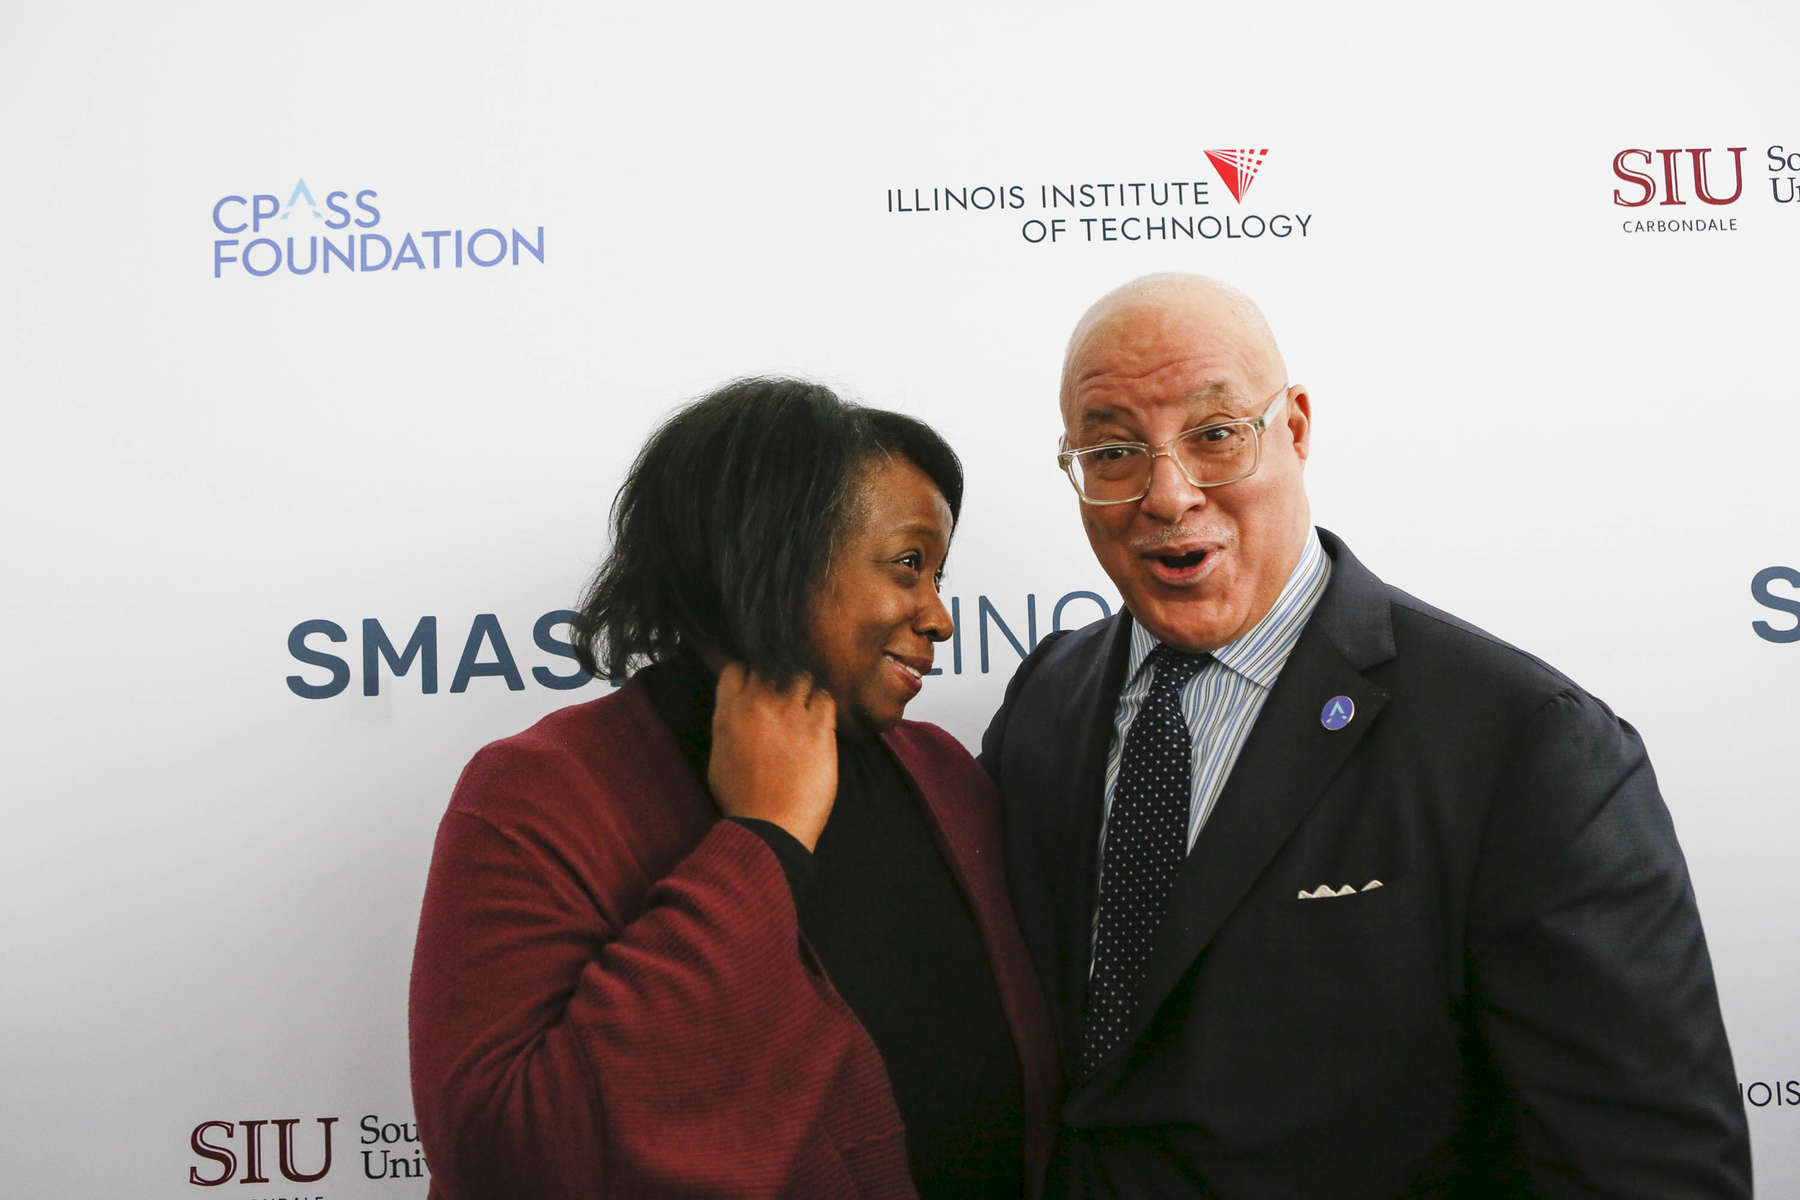 Drs. Whitaker, at the SMASH Illinois launch in Chicago, Illinois on January 24, 2019.